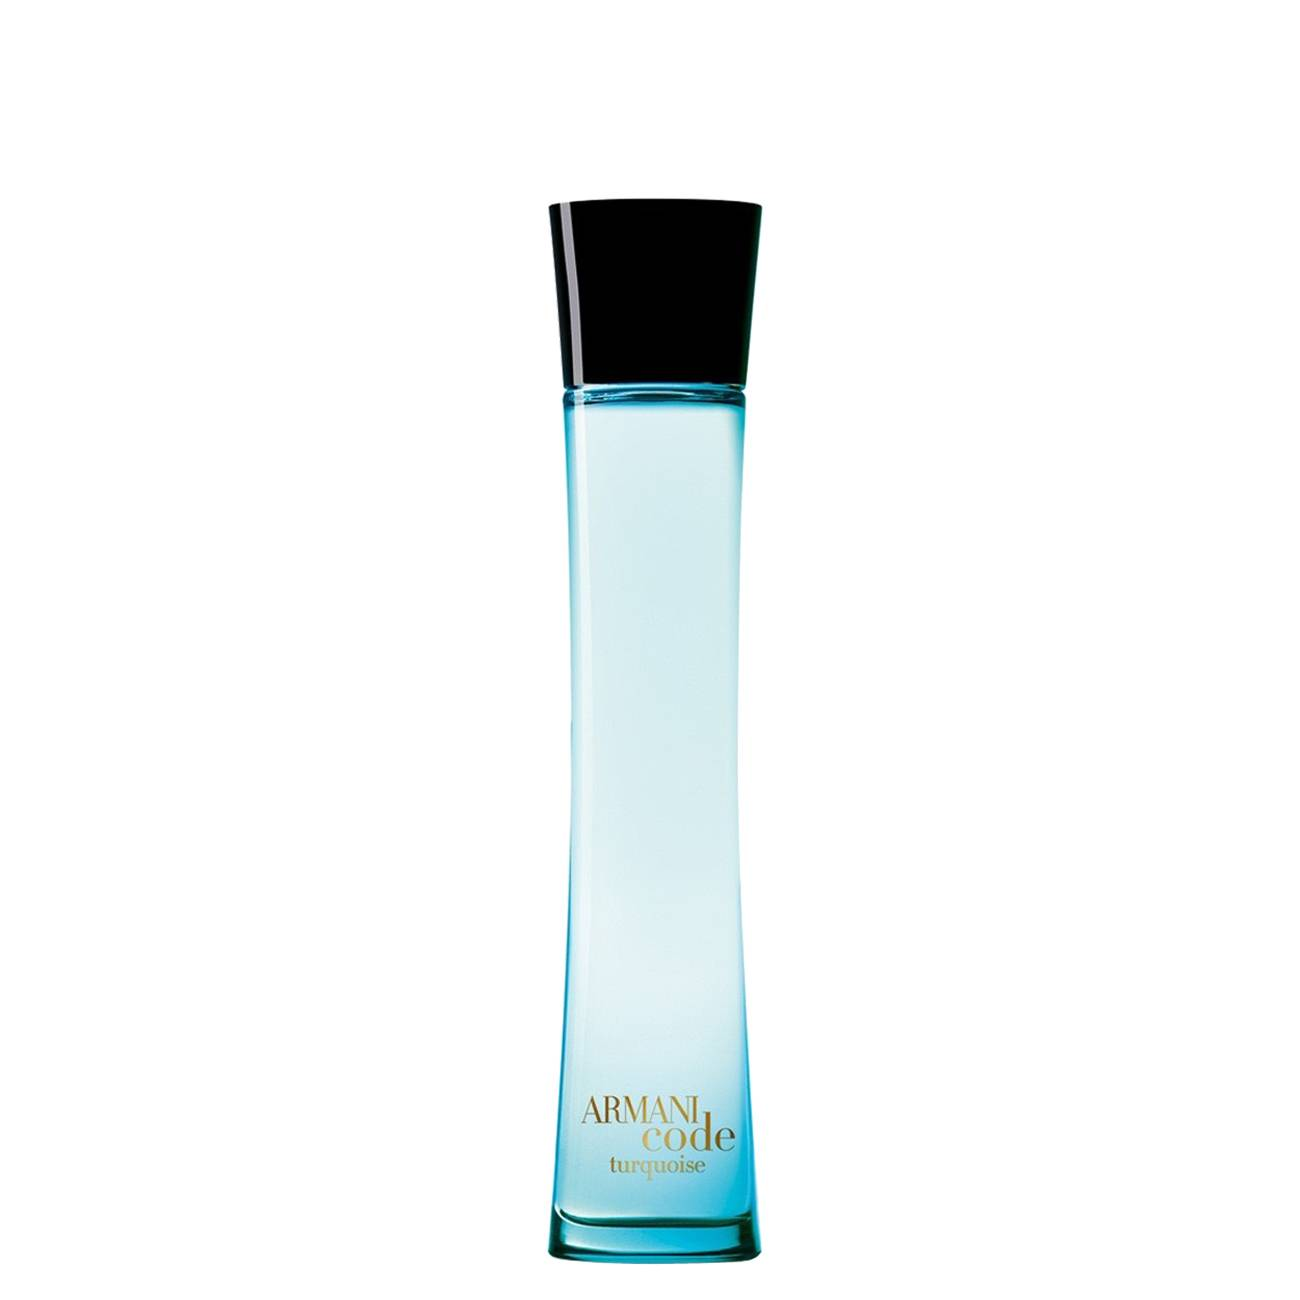 CODE TURQUOISE SUMMER EDITION 75ml